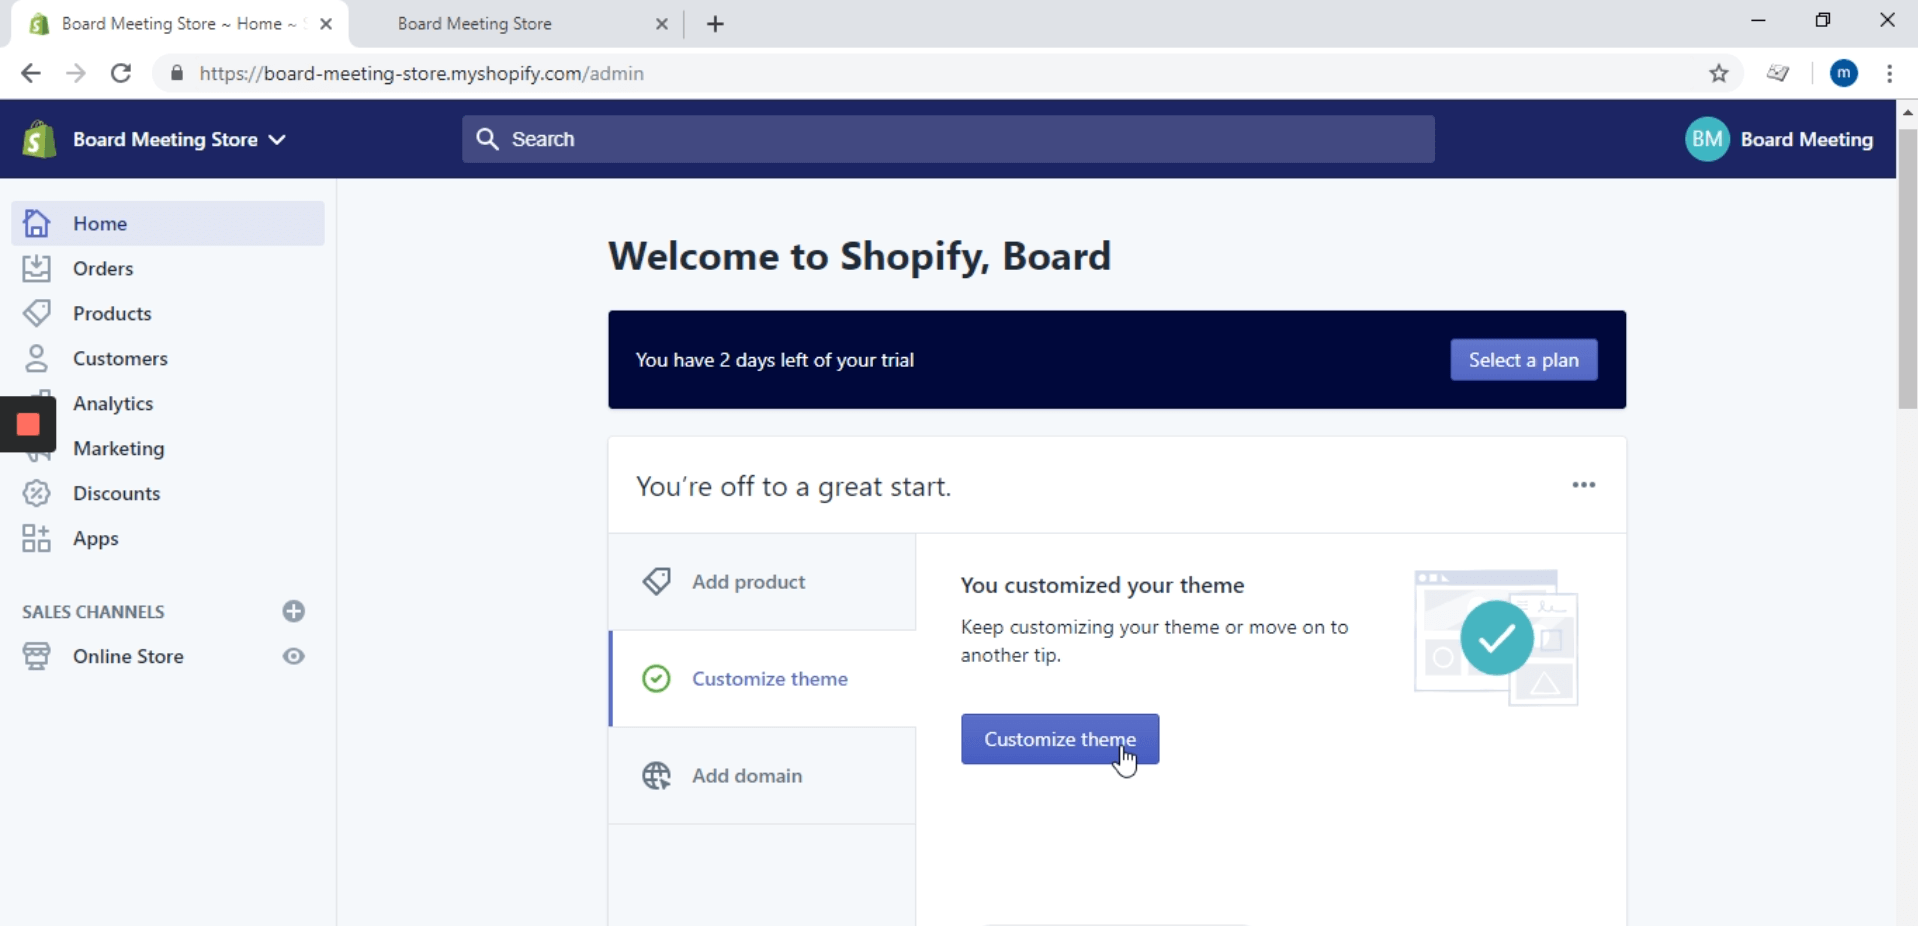 Go to your Shopify admin site